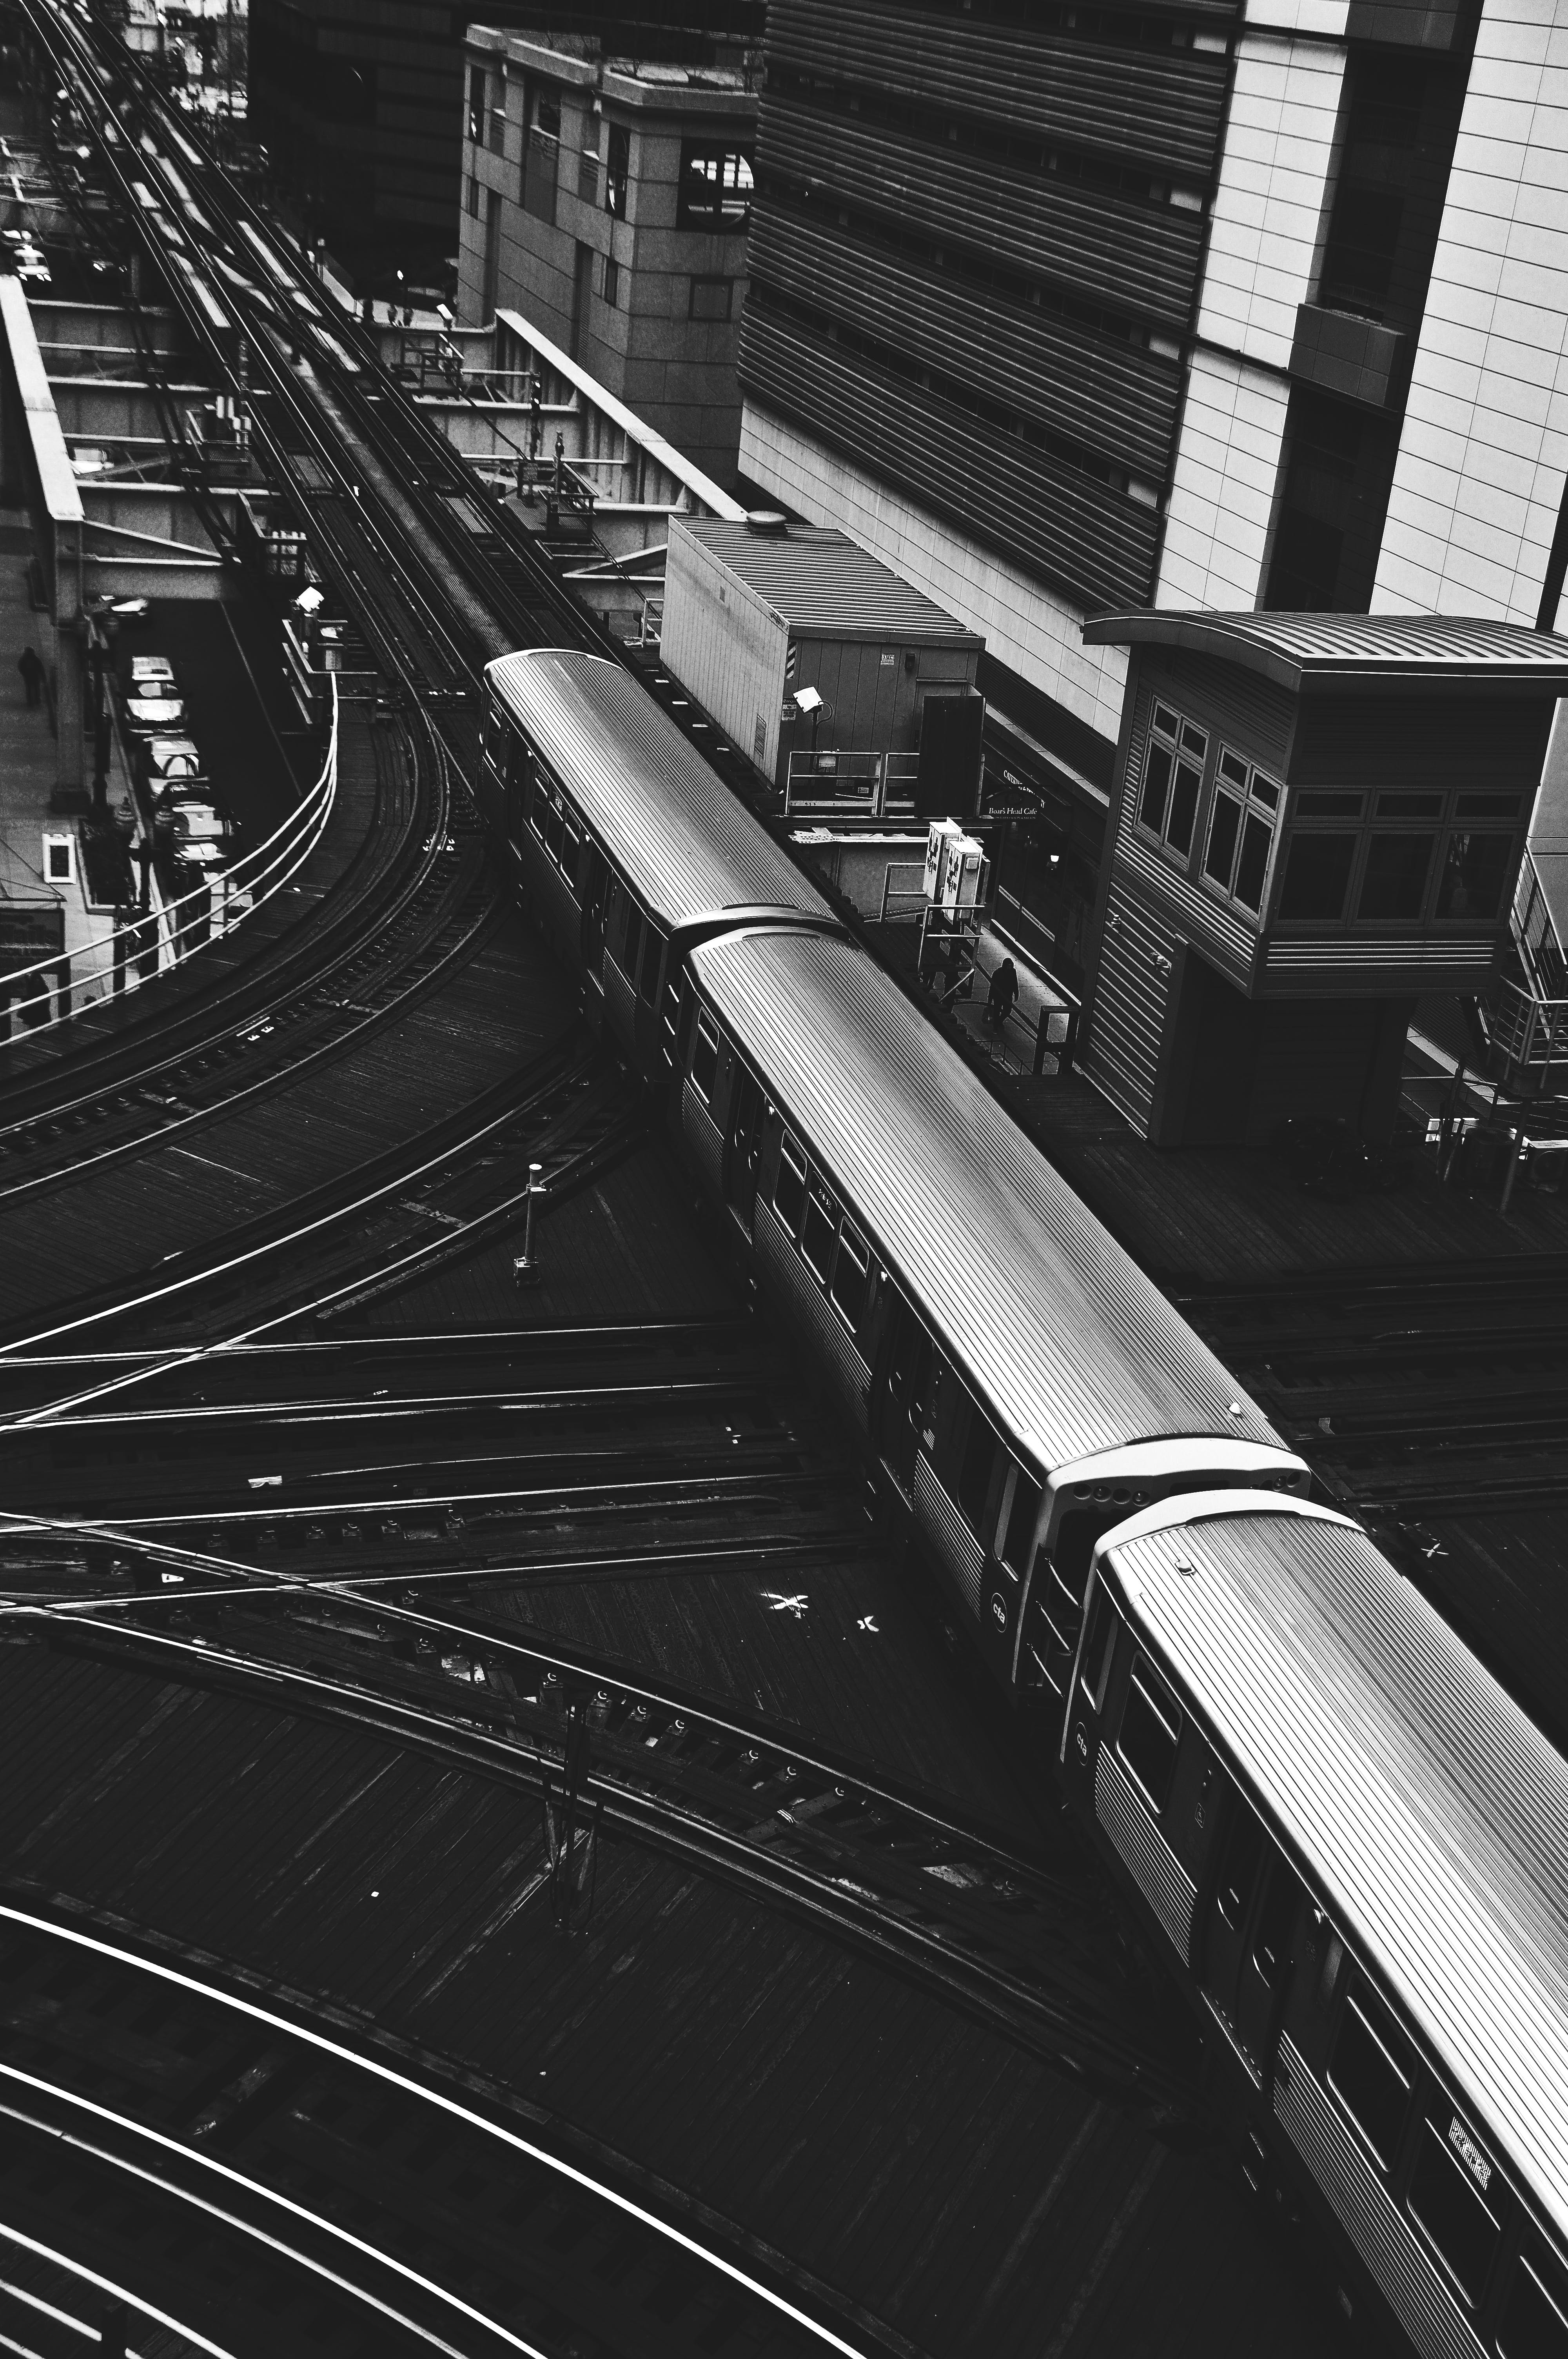 Grayscale Photography Of Train Beside Building